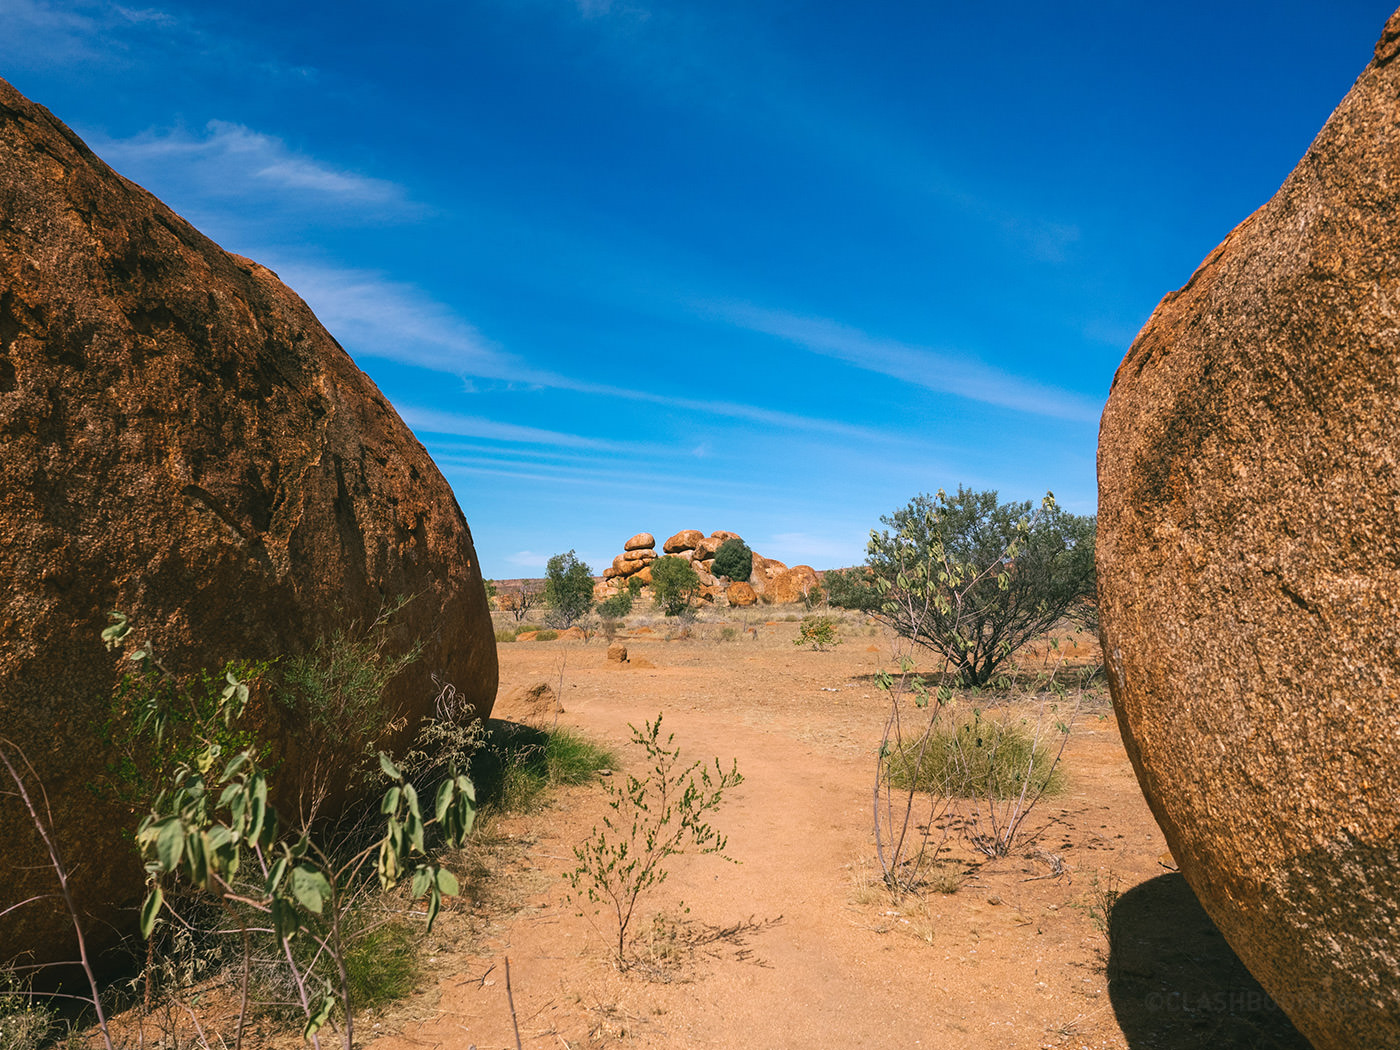 NT Australia - Karlu Karlu - Stack of boulders peeping through 2 huge boulders